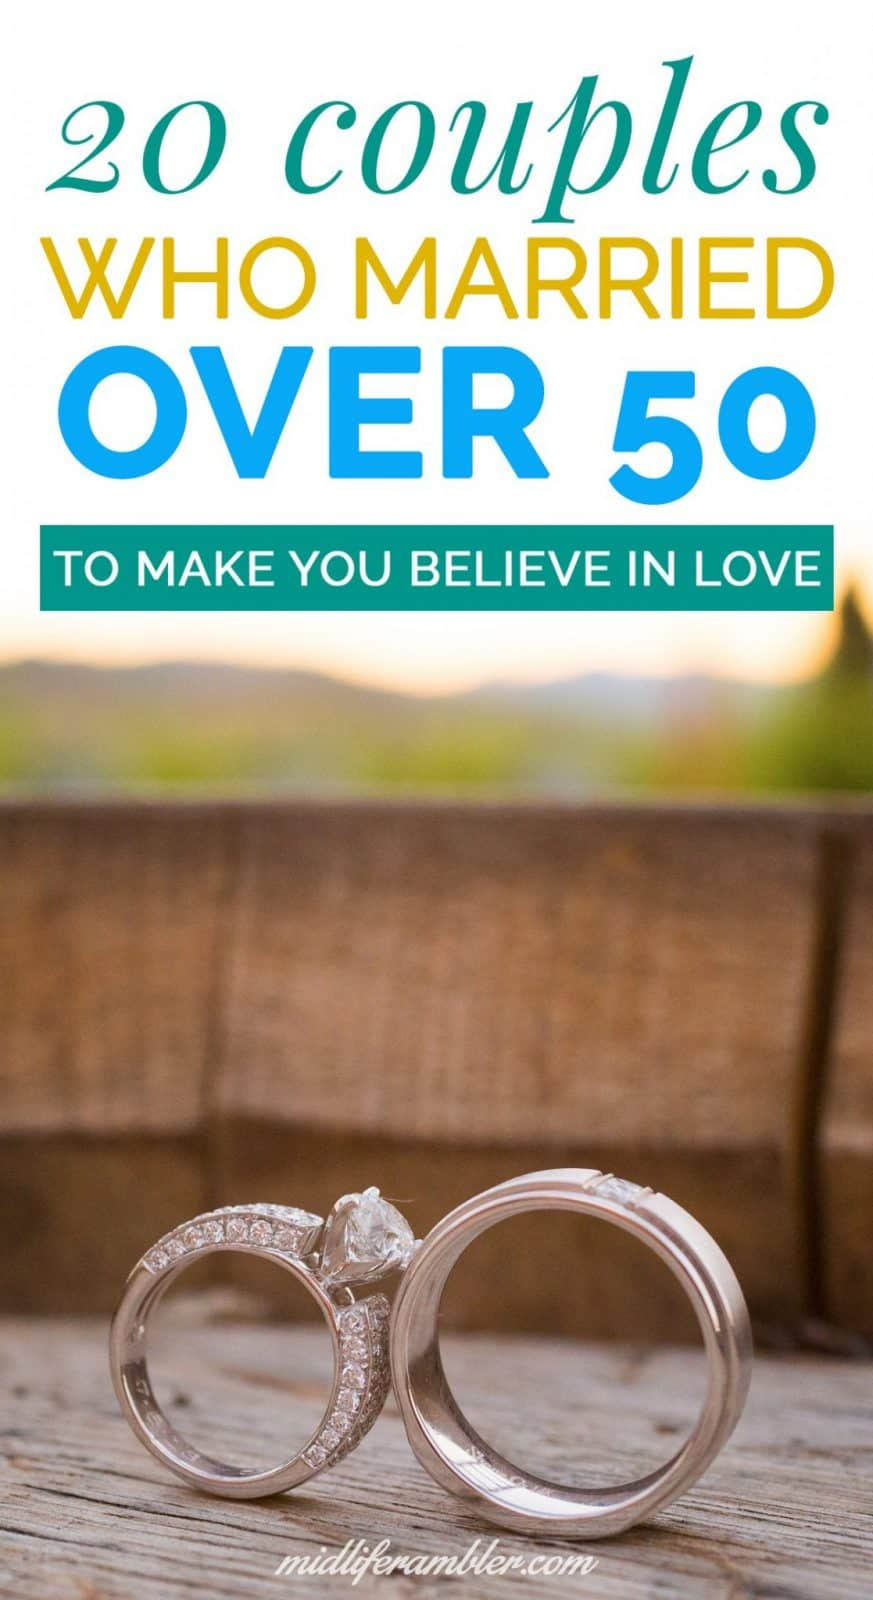 20 Couples Who Met and Married After 50 Who Will Make You Believe in Love Again 4